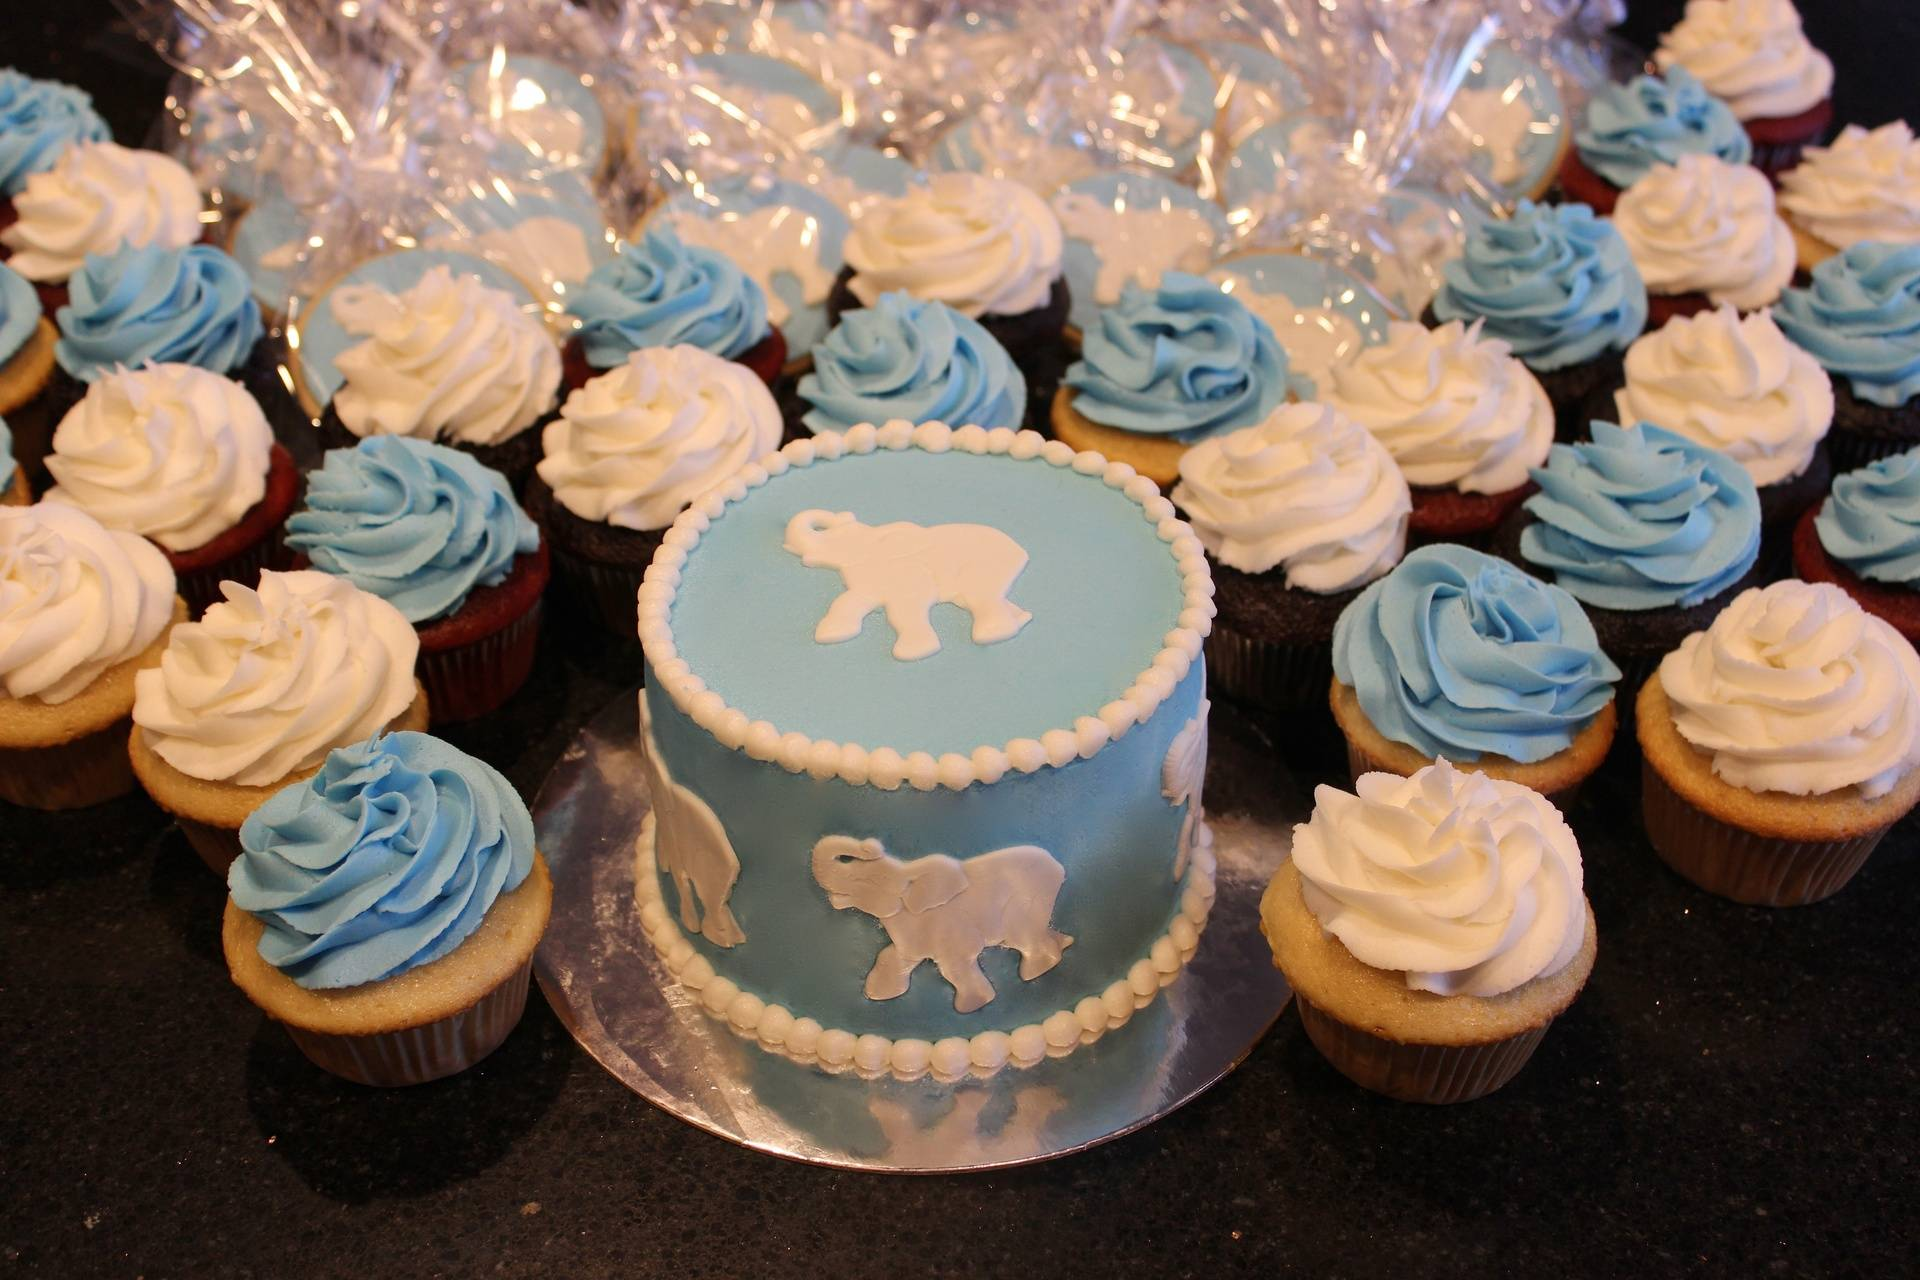 Elephant Theme 1st Birthday Cake, Cupcakes and Cookies